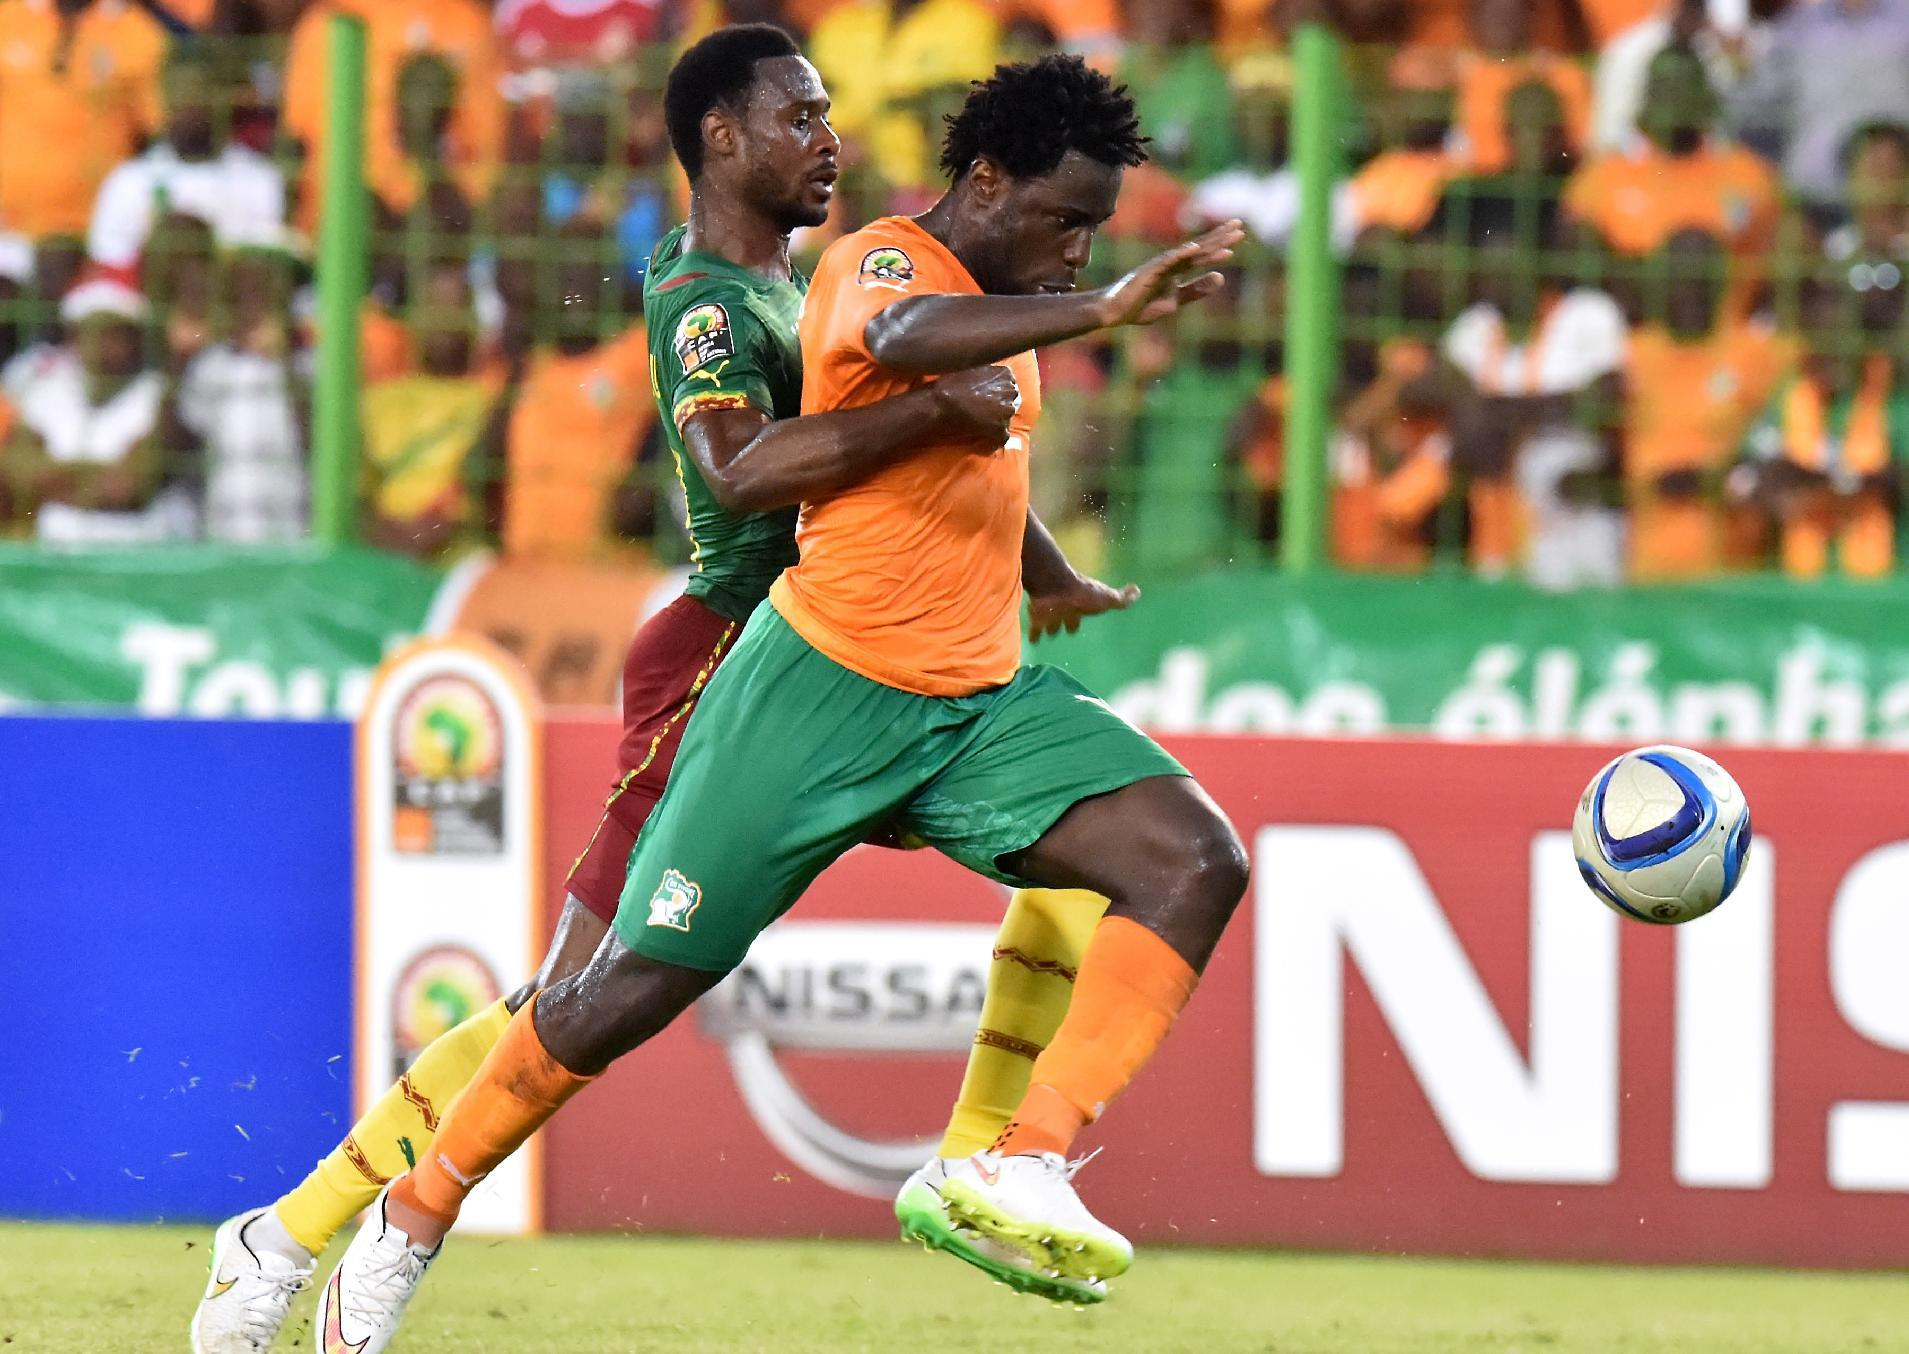 Tournament starts now for Ivorians, says Renard